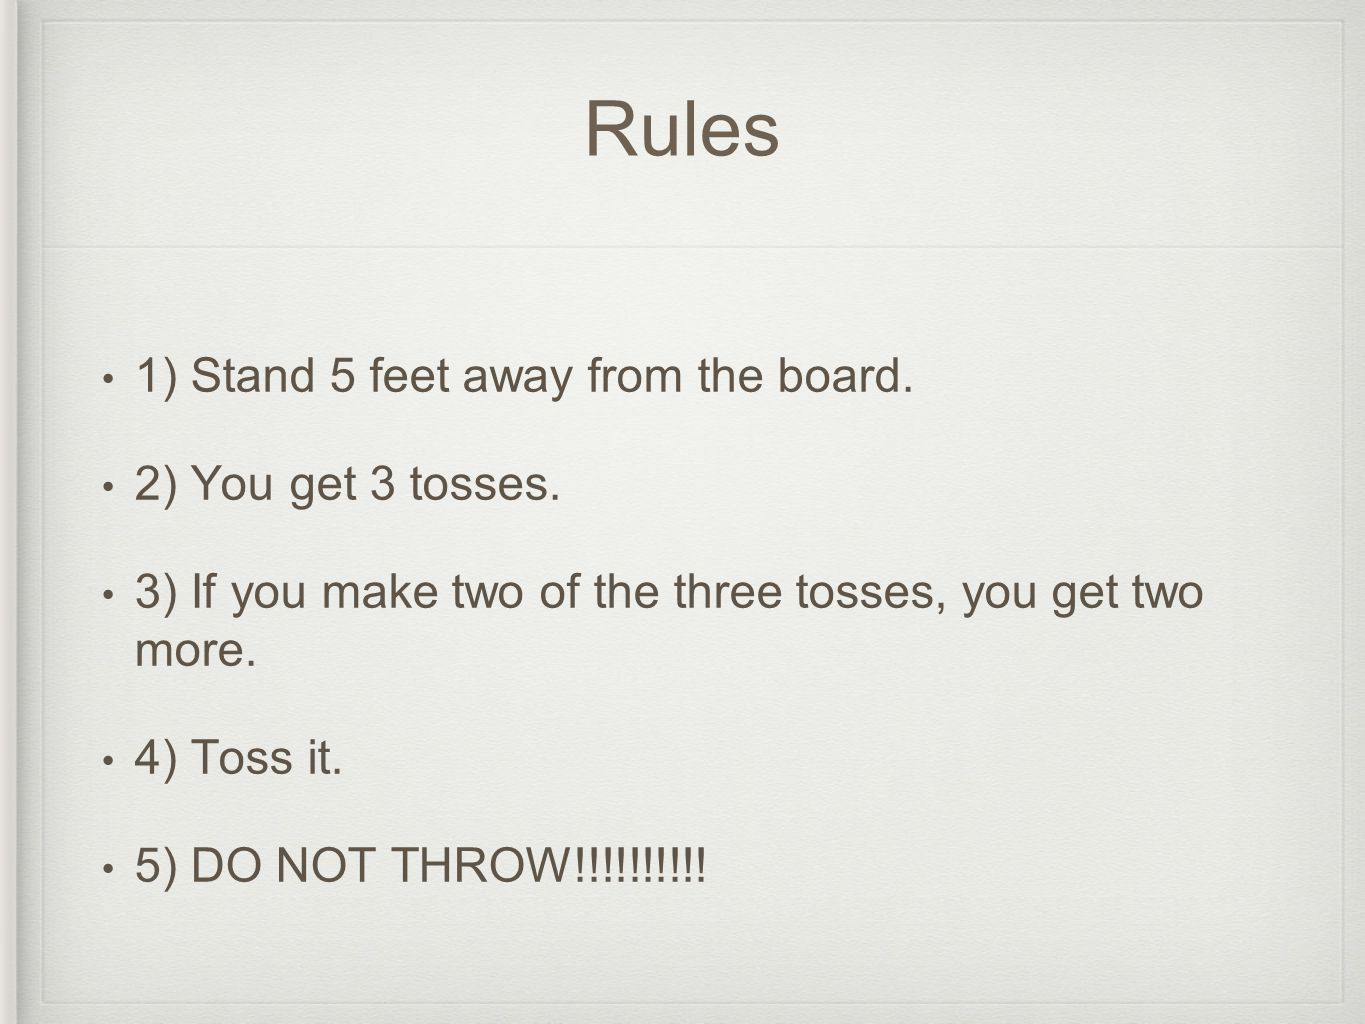 Rules 1) Stand 5 feet away from the board. 2) You get 3 tosses. 3) If you make two of the three tosses, you get two more. 4) Toss it. 5) DO NOT THROW!